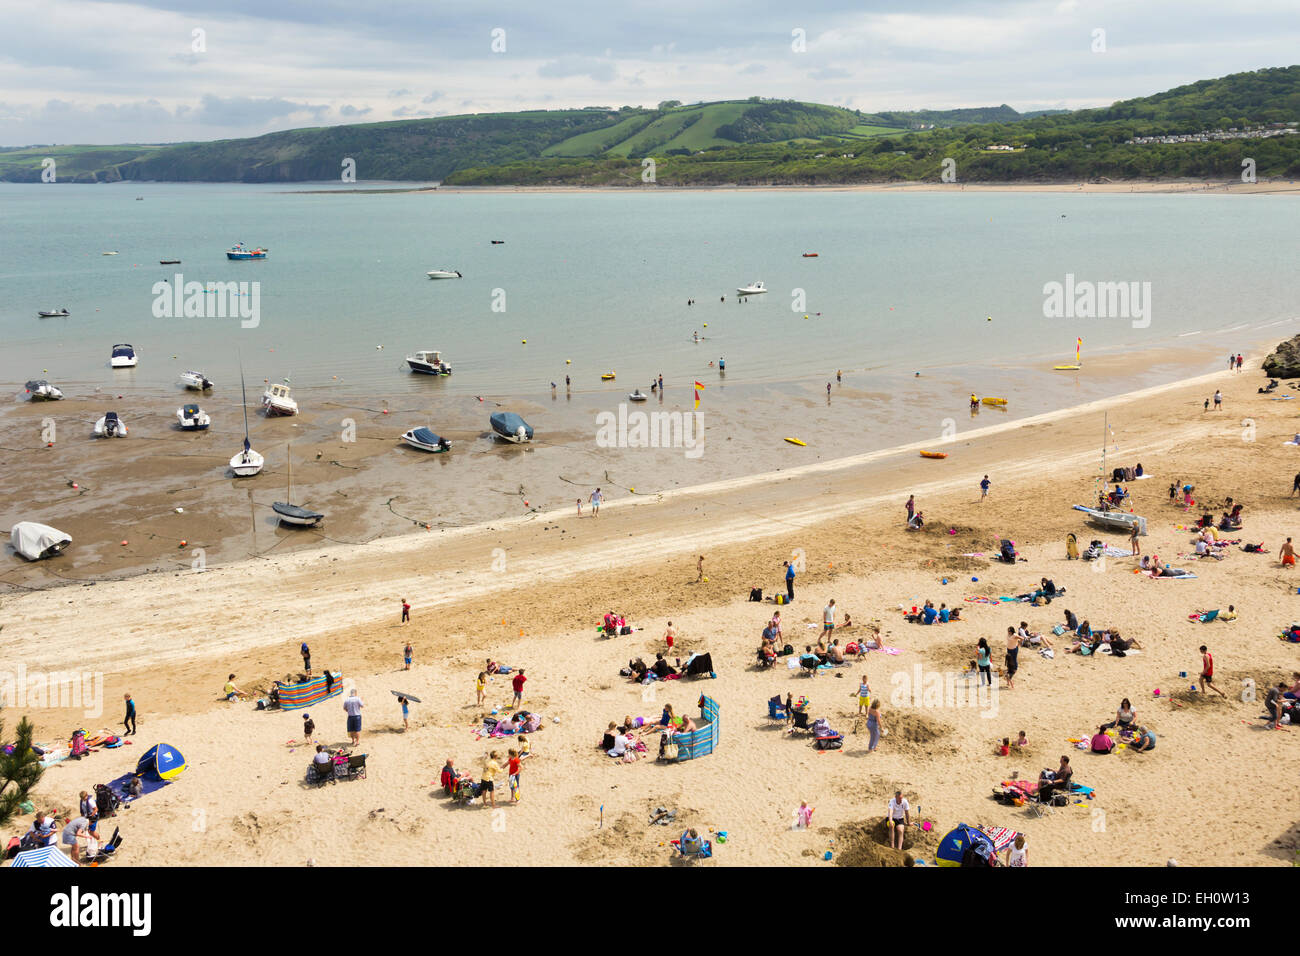 Holidaymakers on the beach near the harbour, New Quay, Ceredigion, Wales. - Stock Image